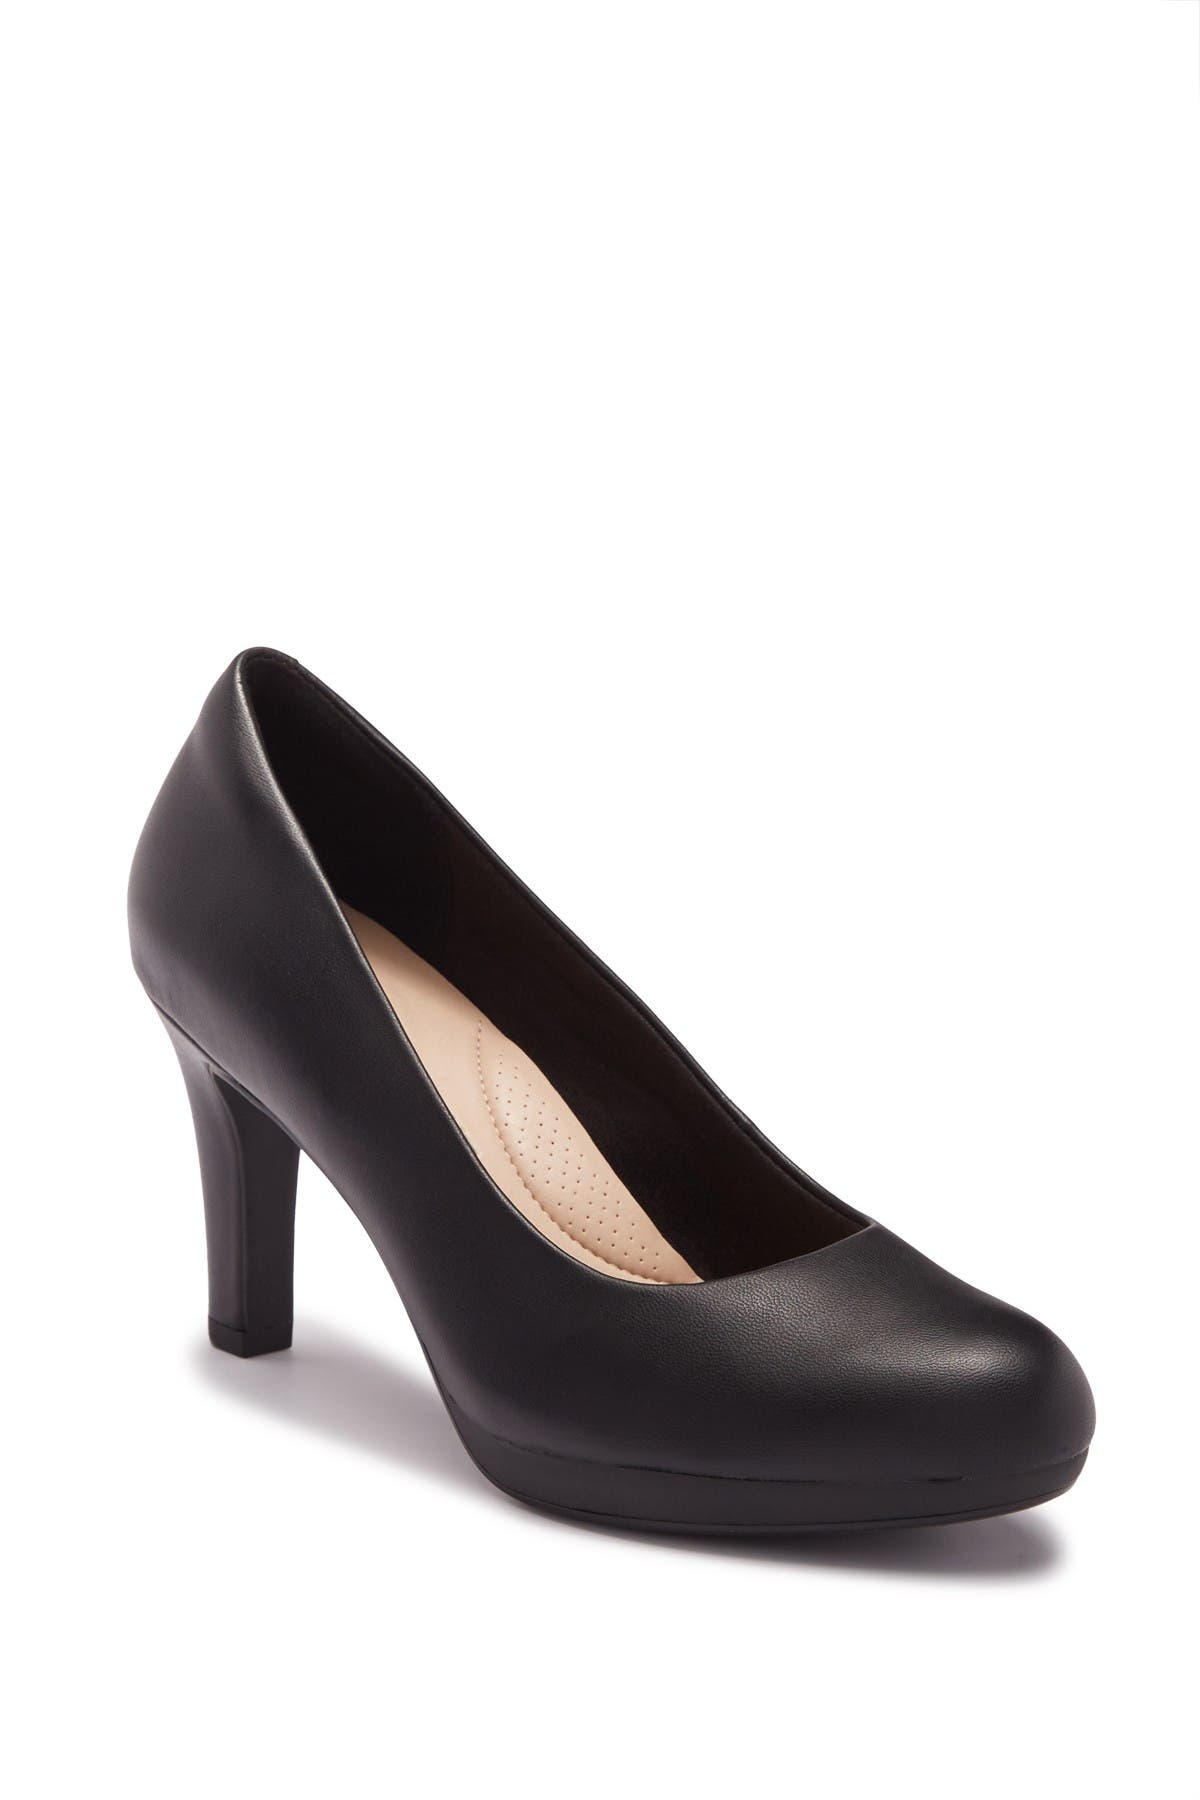 Image of Clarks Adriel Viola Leather Pump - Wide Width Available